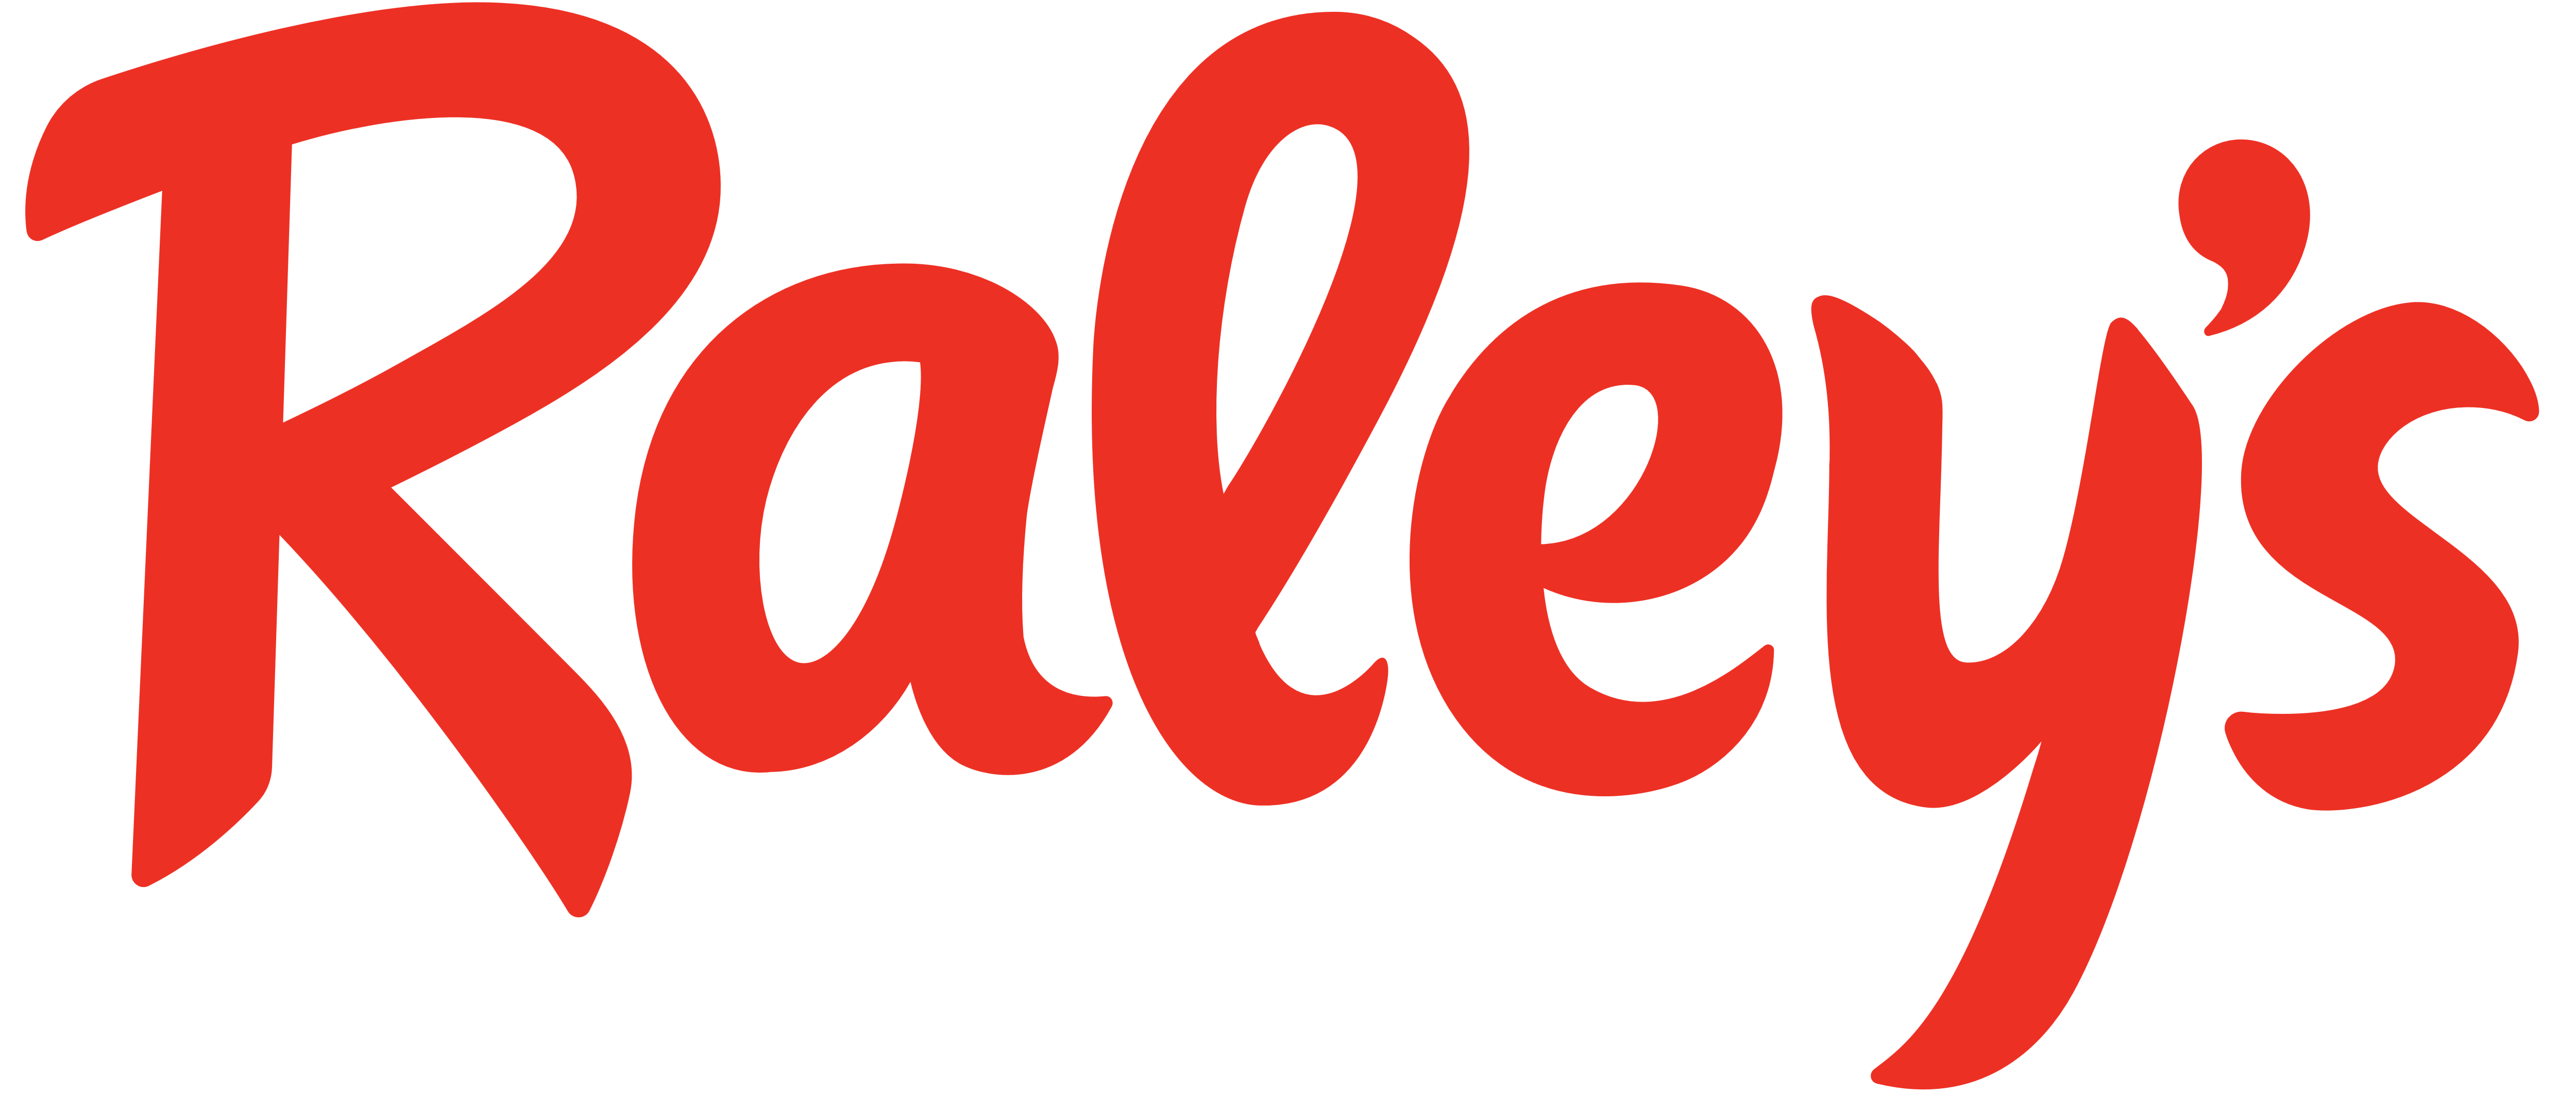 Raleys has a Points Rewards Voucher program that gives members exclusive coupons and promo codes. Loyal subscribers can collect virtual points that turn into real store credit. Use the rewards to save on external products in categories like personal health, beauty, pharmacy, groceries and cookware%(8).